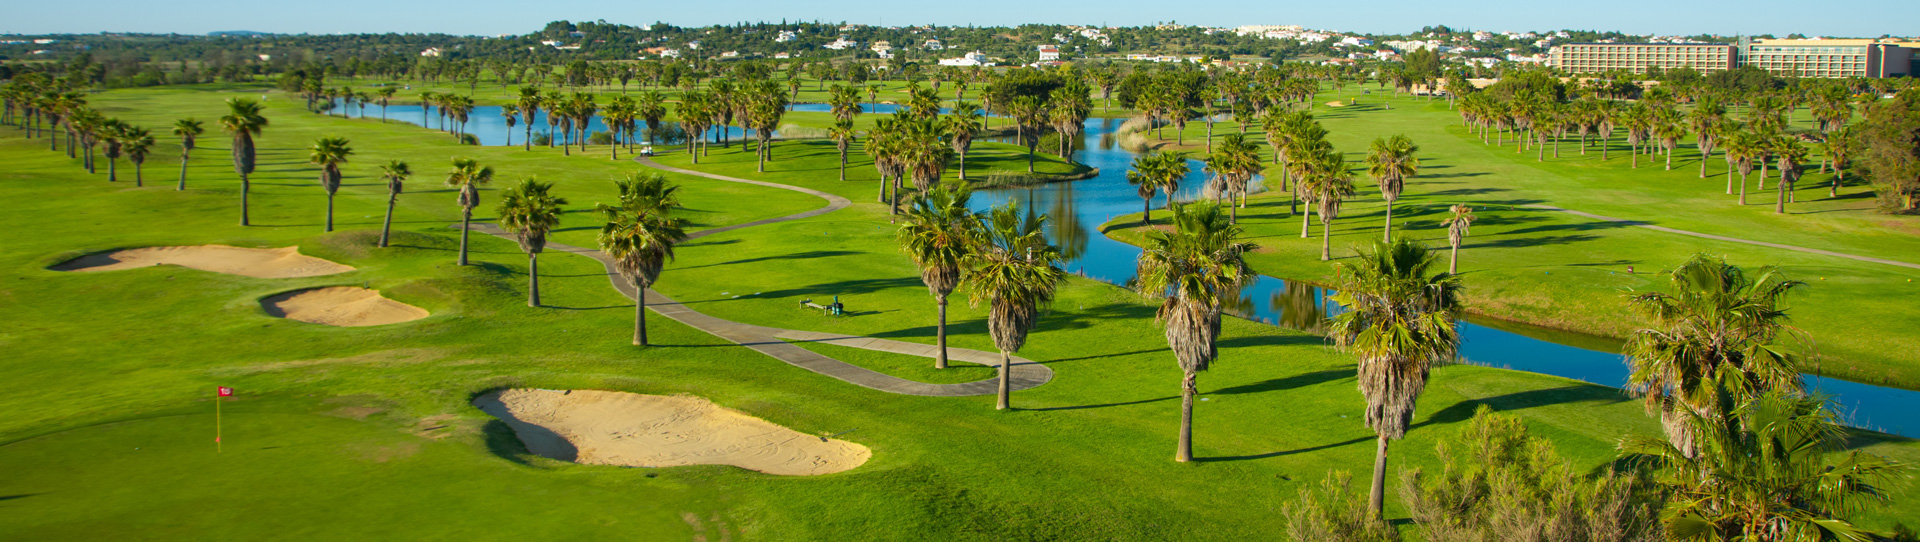 Salgados Golf Course - Photo 1